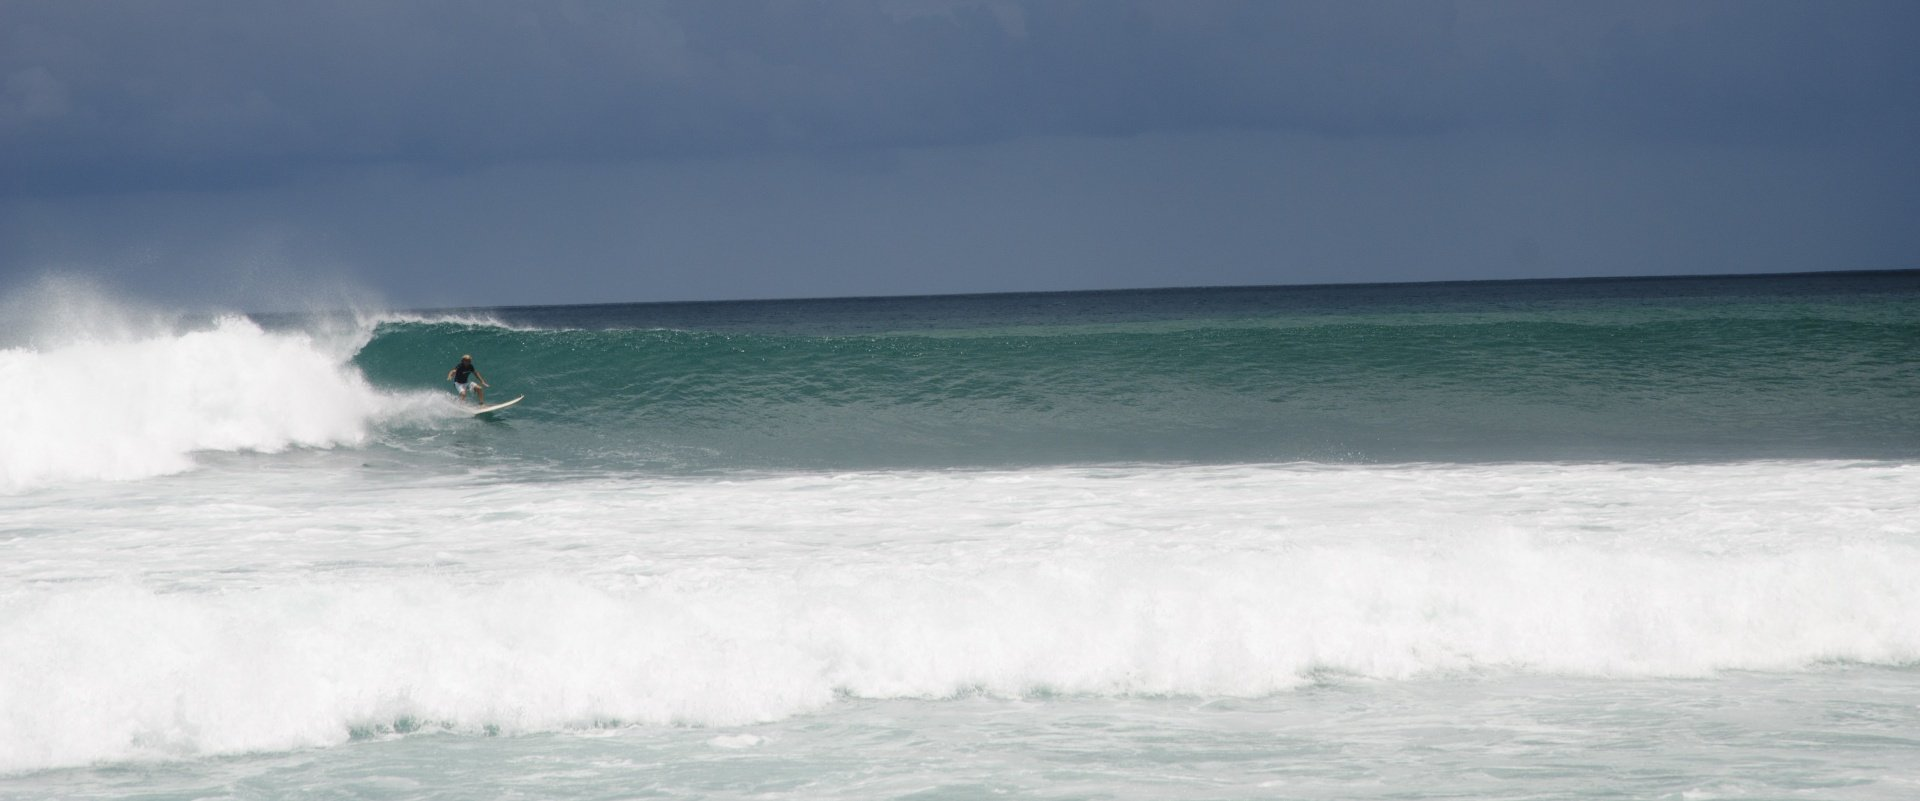 N Gor Island Surfcamp's photo of N'gor Lefts